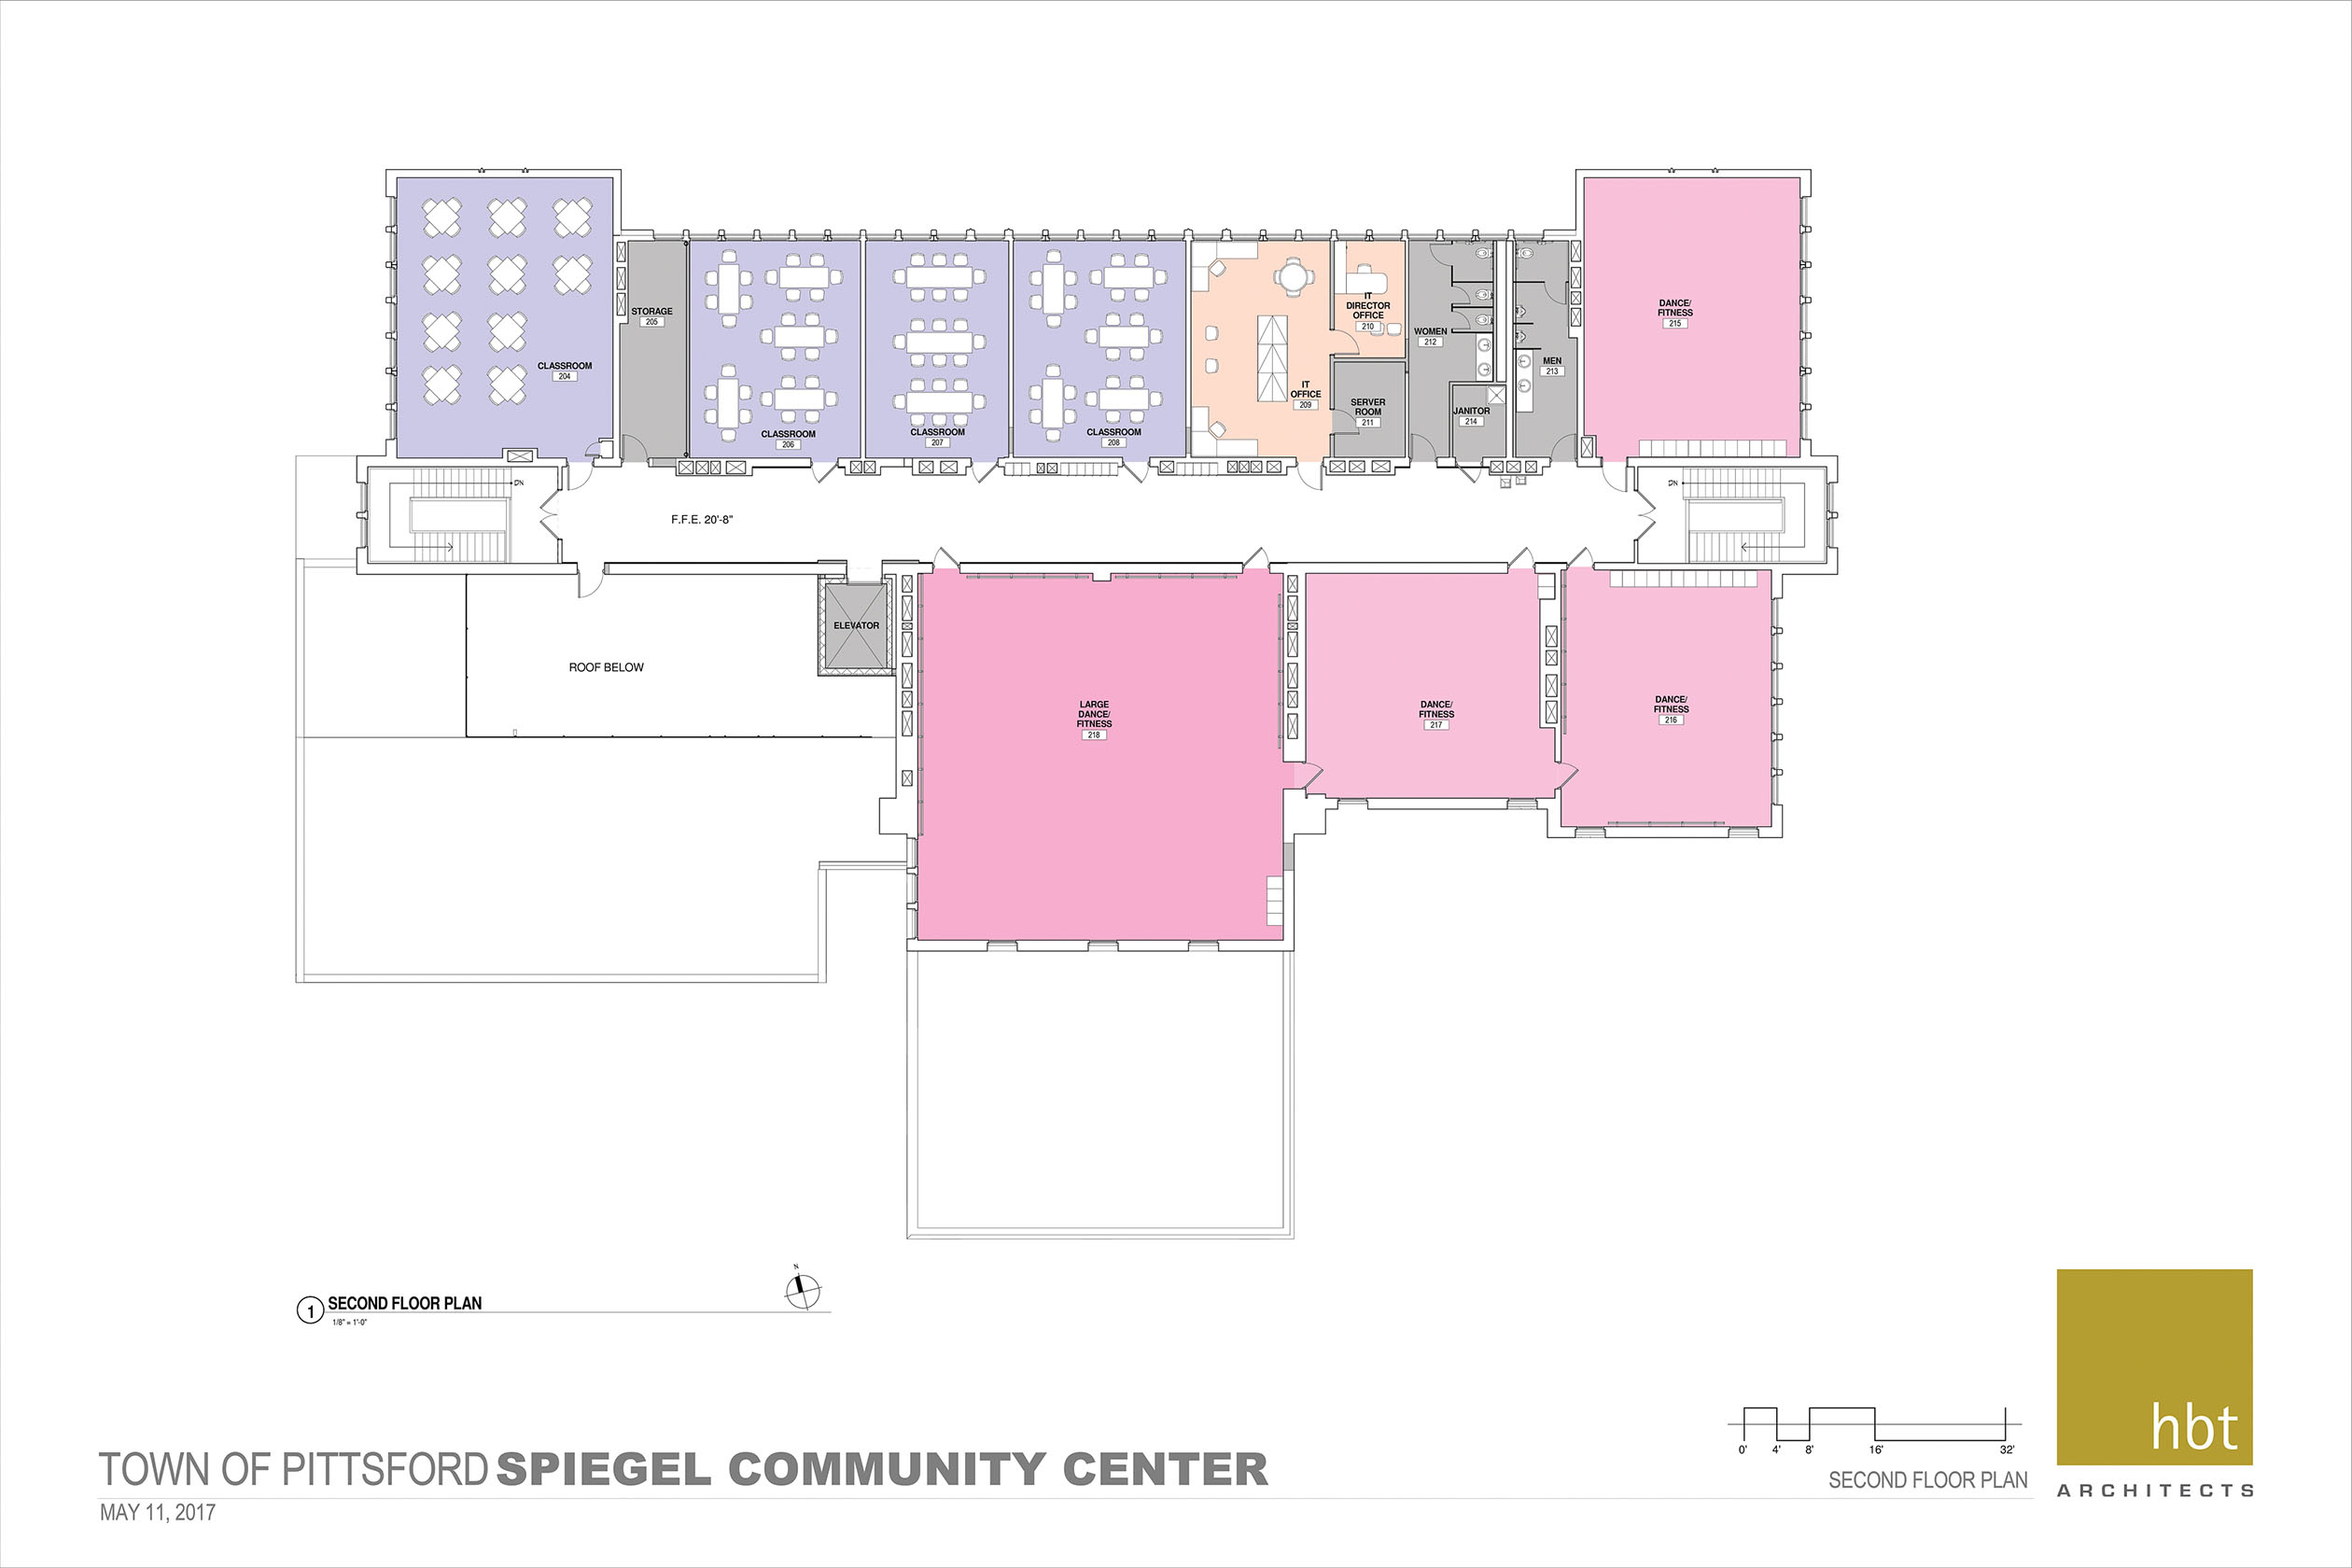 Community Center Project | Town of Pittsford, New York on ada bathroom mirrors, ada home kitchen, ada approved house plans, wheelchair friendly house plans, ada home design, ada accessible house plans, ada home bathrooms, handicapped house plans,